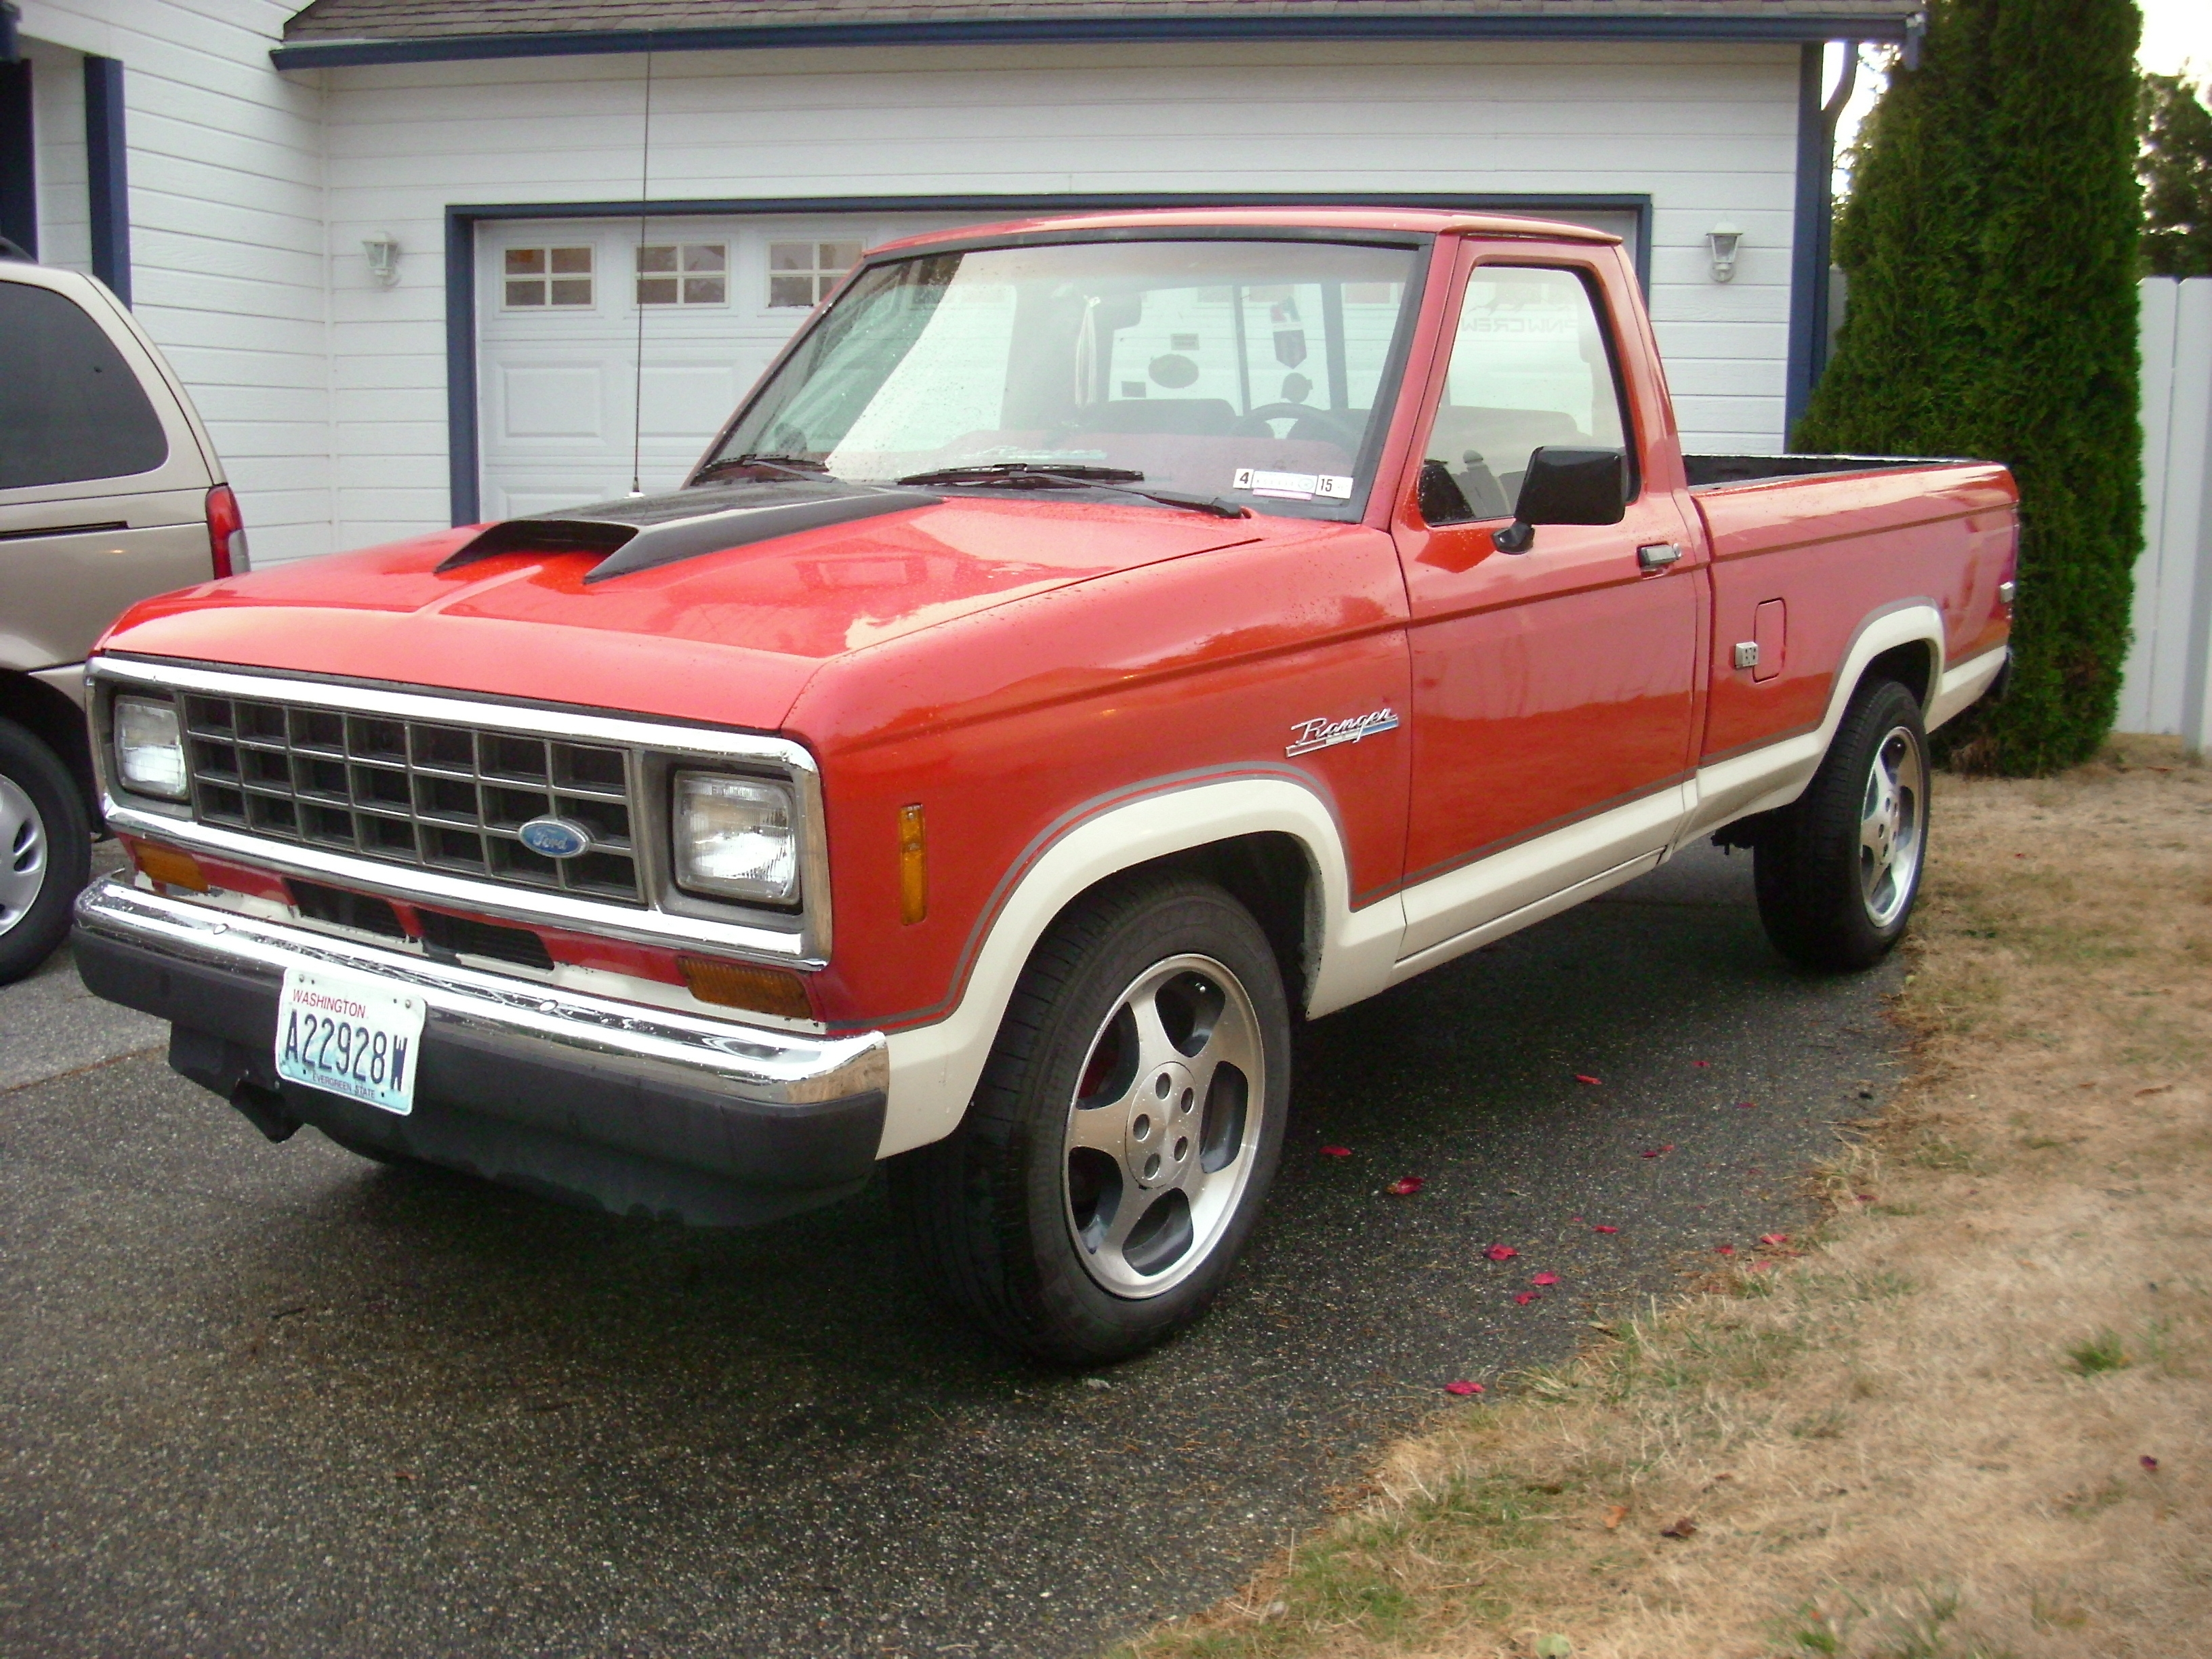 Airtruksrus 1987 Ford Ranger Regular Cab